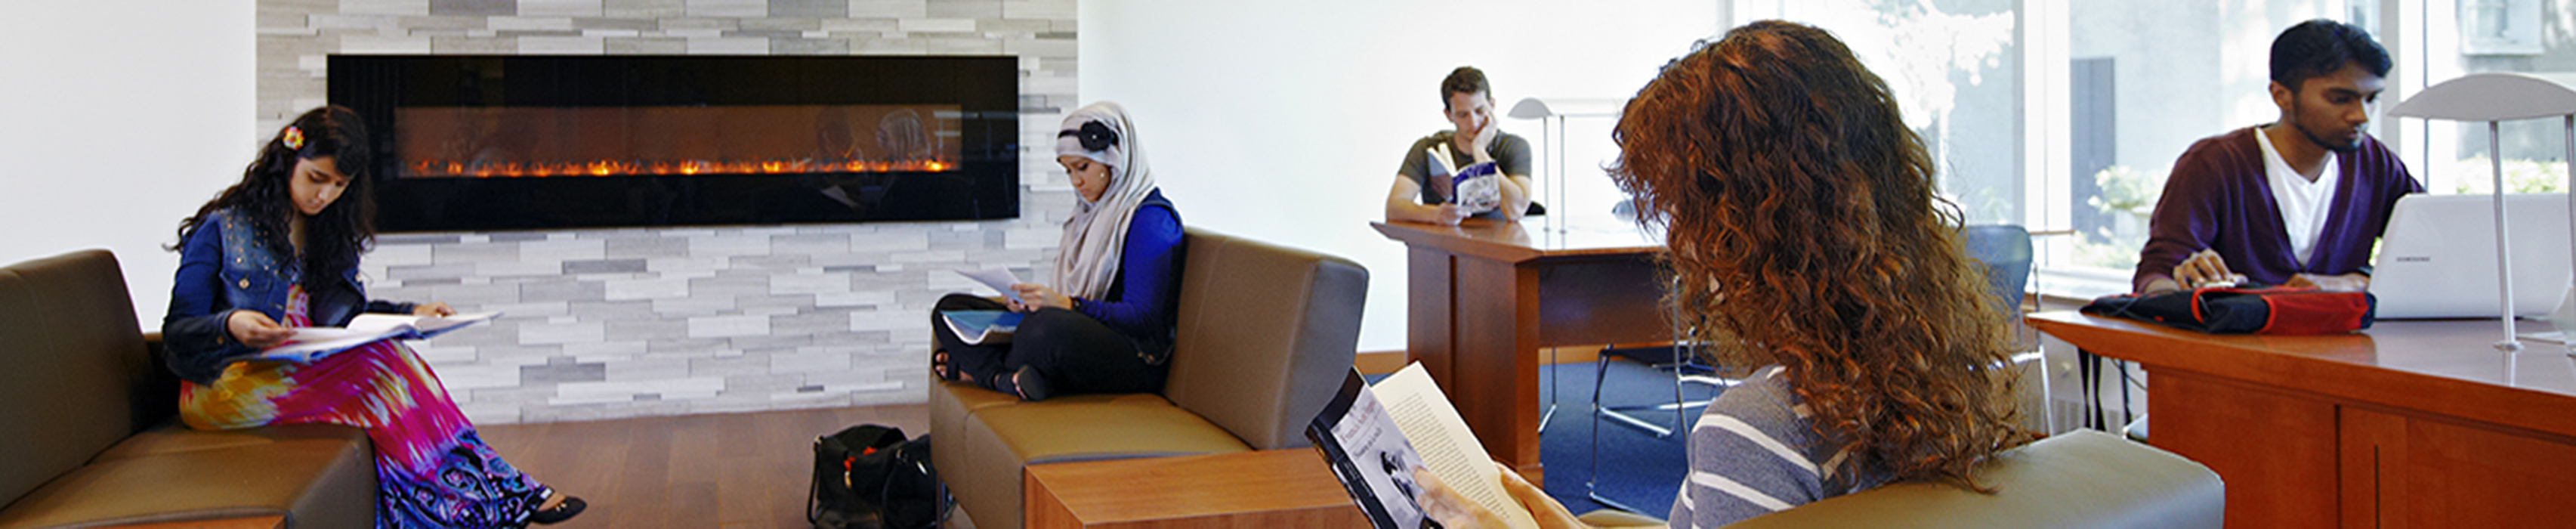 Students reading in the lounge at Frost Library - used as the header image for the CDA website